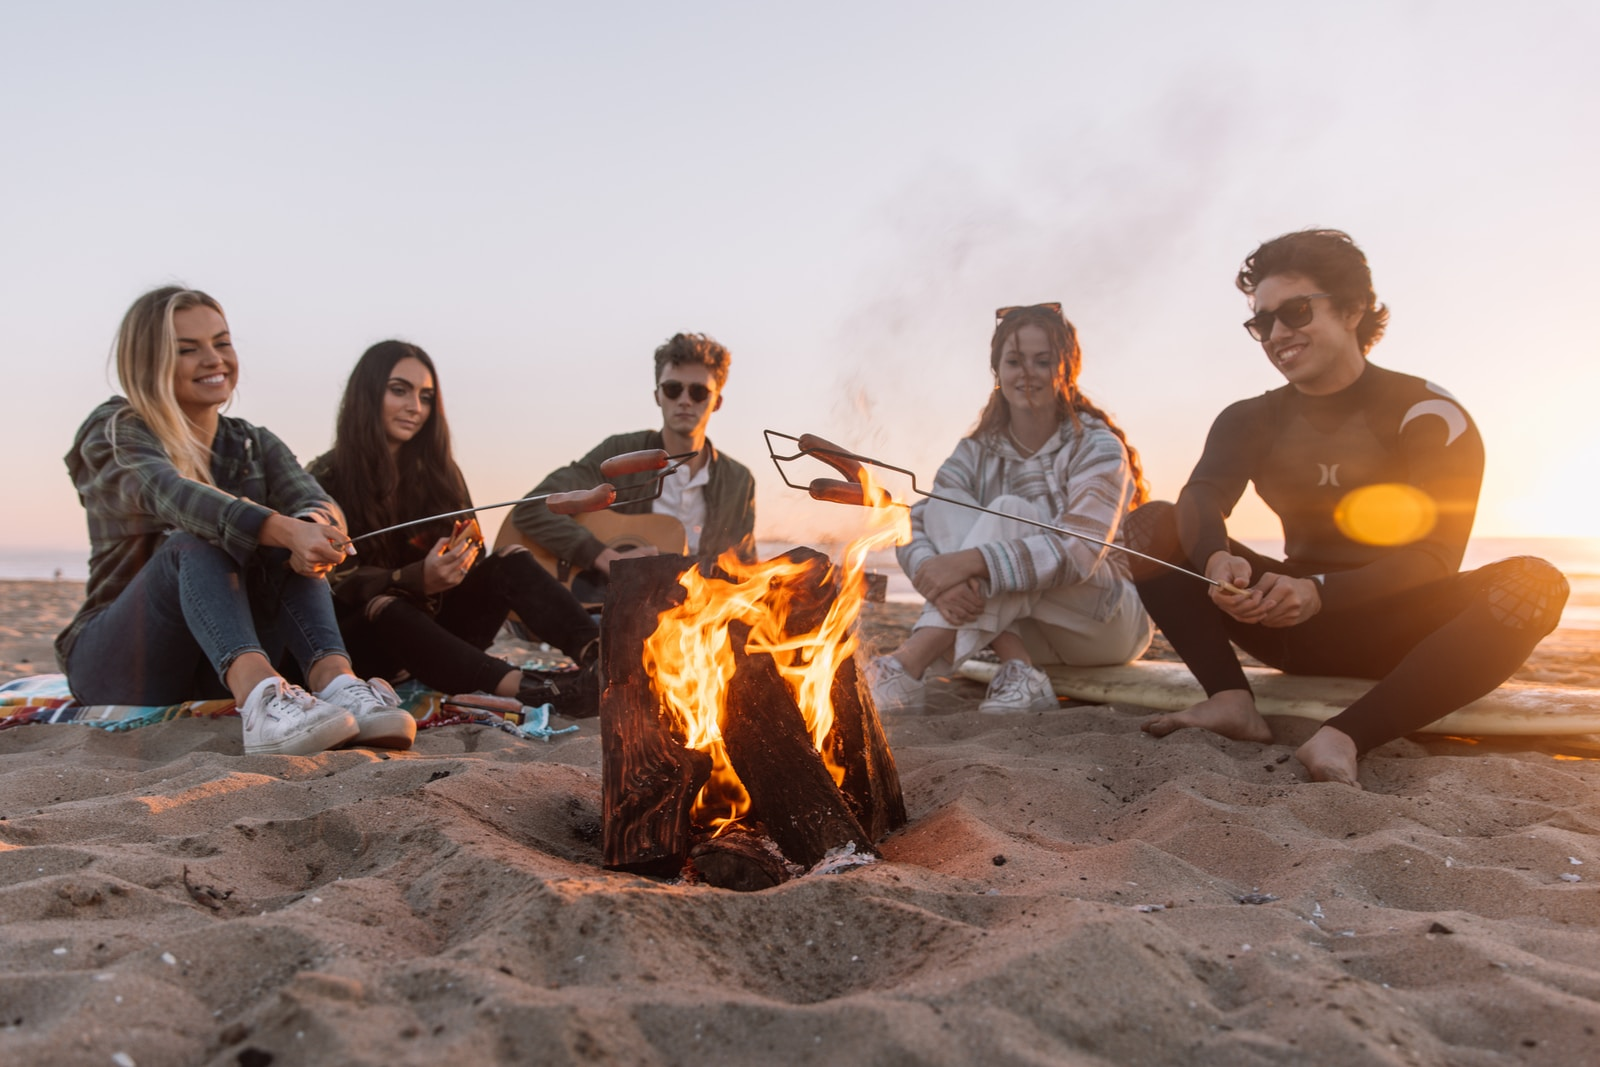 group of people sitting on ground with bonfire